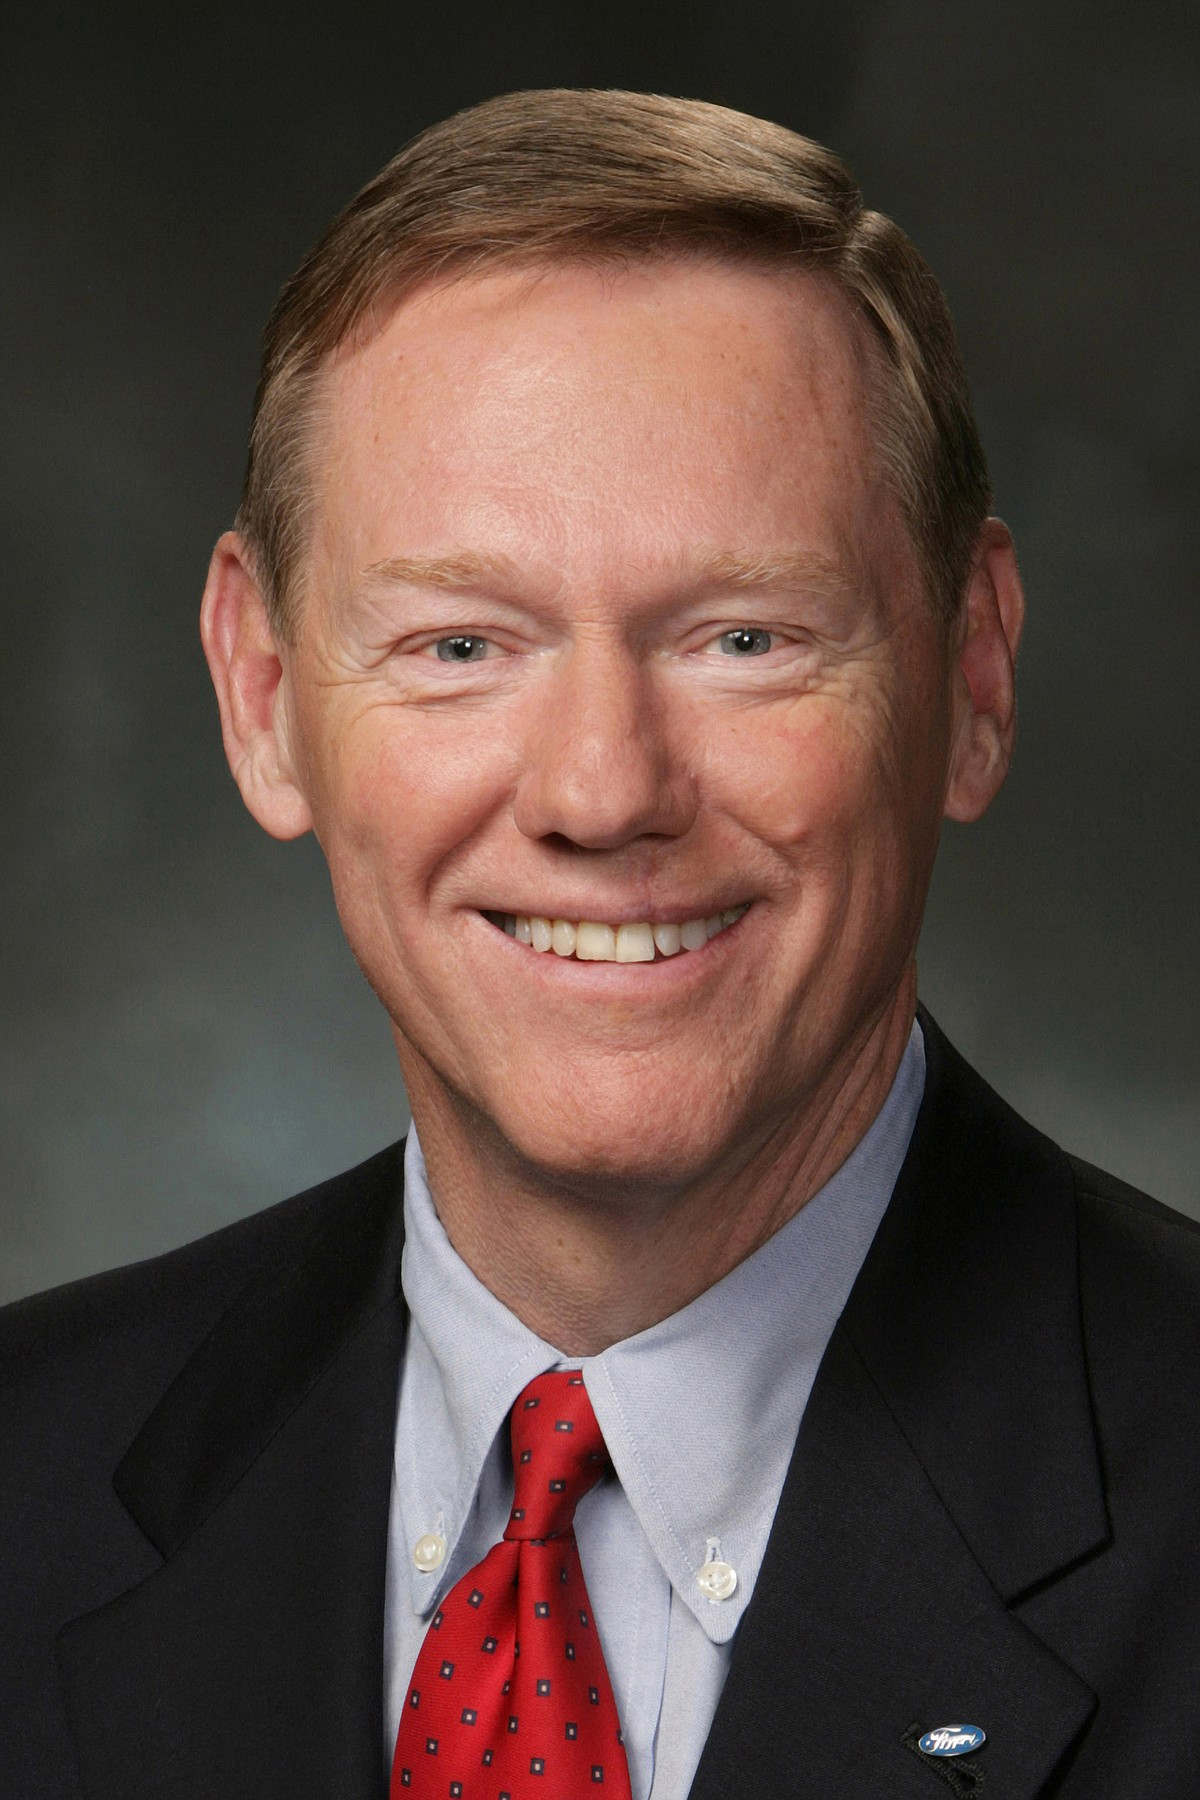 alan mulally ceo ford motor company Allan mulally has been ceo and president of ford motor co since september, 2006 before he joined ford, mulally served as a president and ceo of boeing commercial airplanes from september 1998 to september 2006.